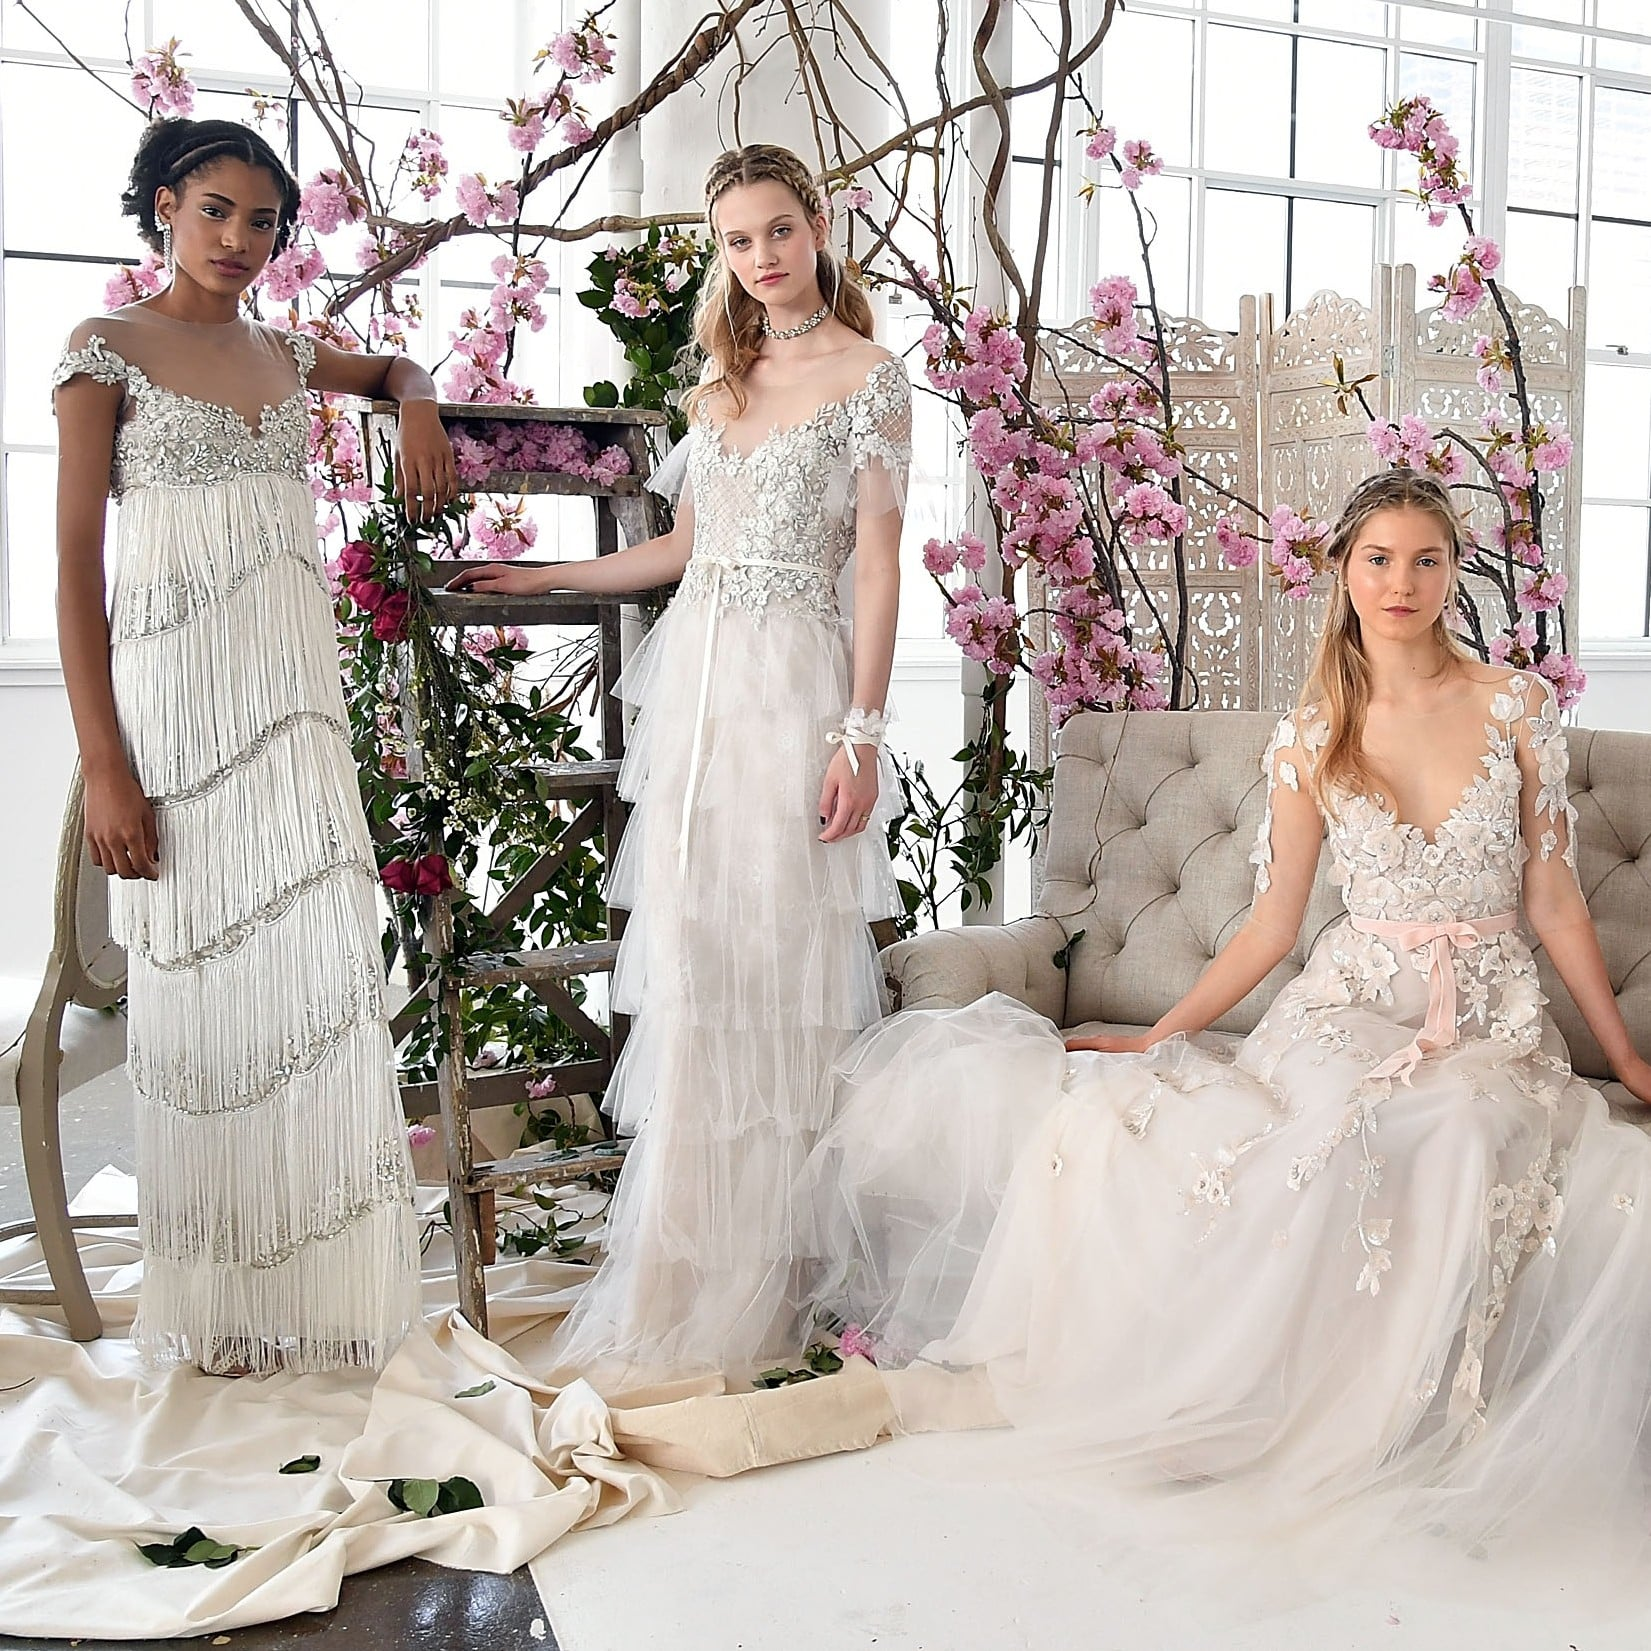 Best Wedding Dress Designers | POPSUGAR Fashion